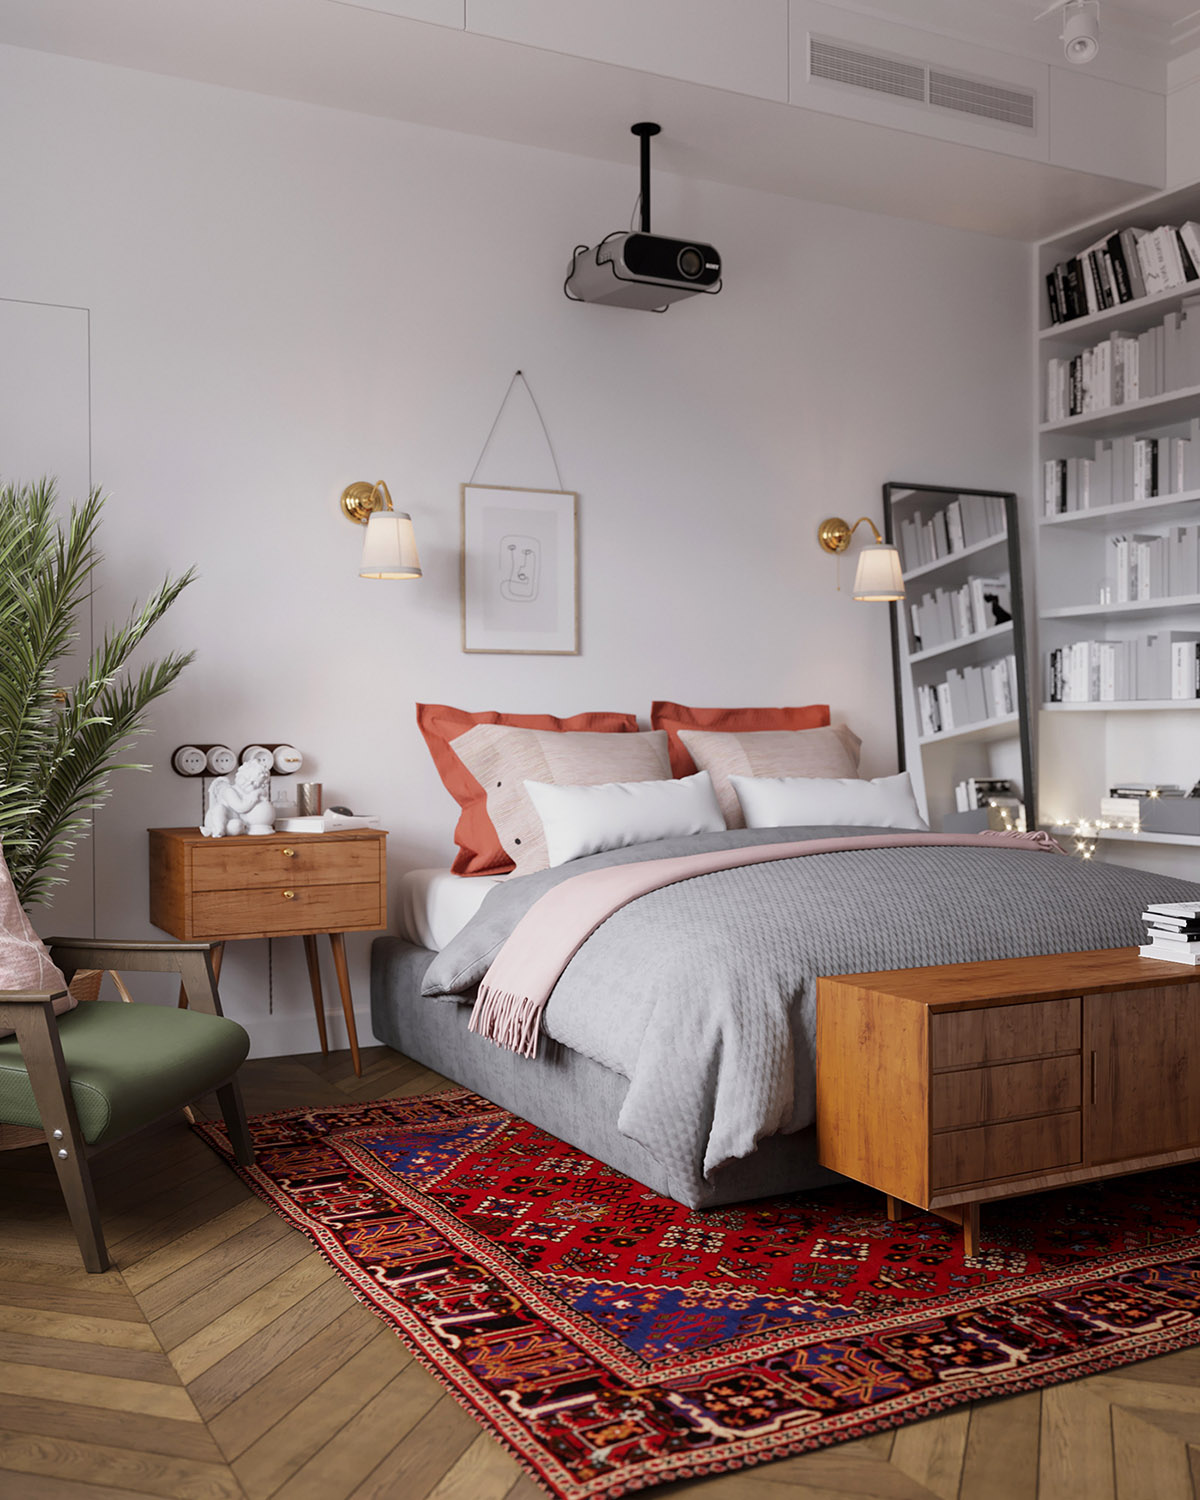 Earthy Eclectic Scandinavian Style Interior images 16